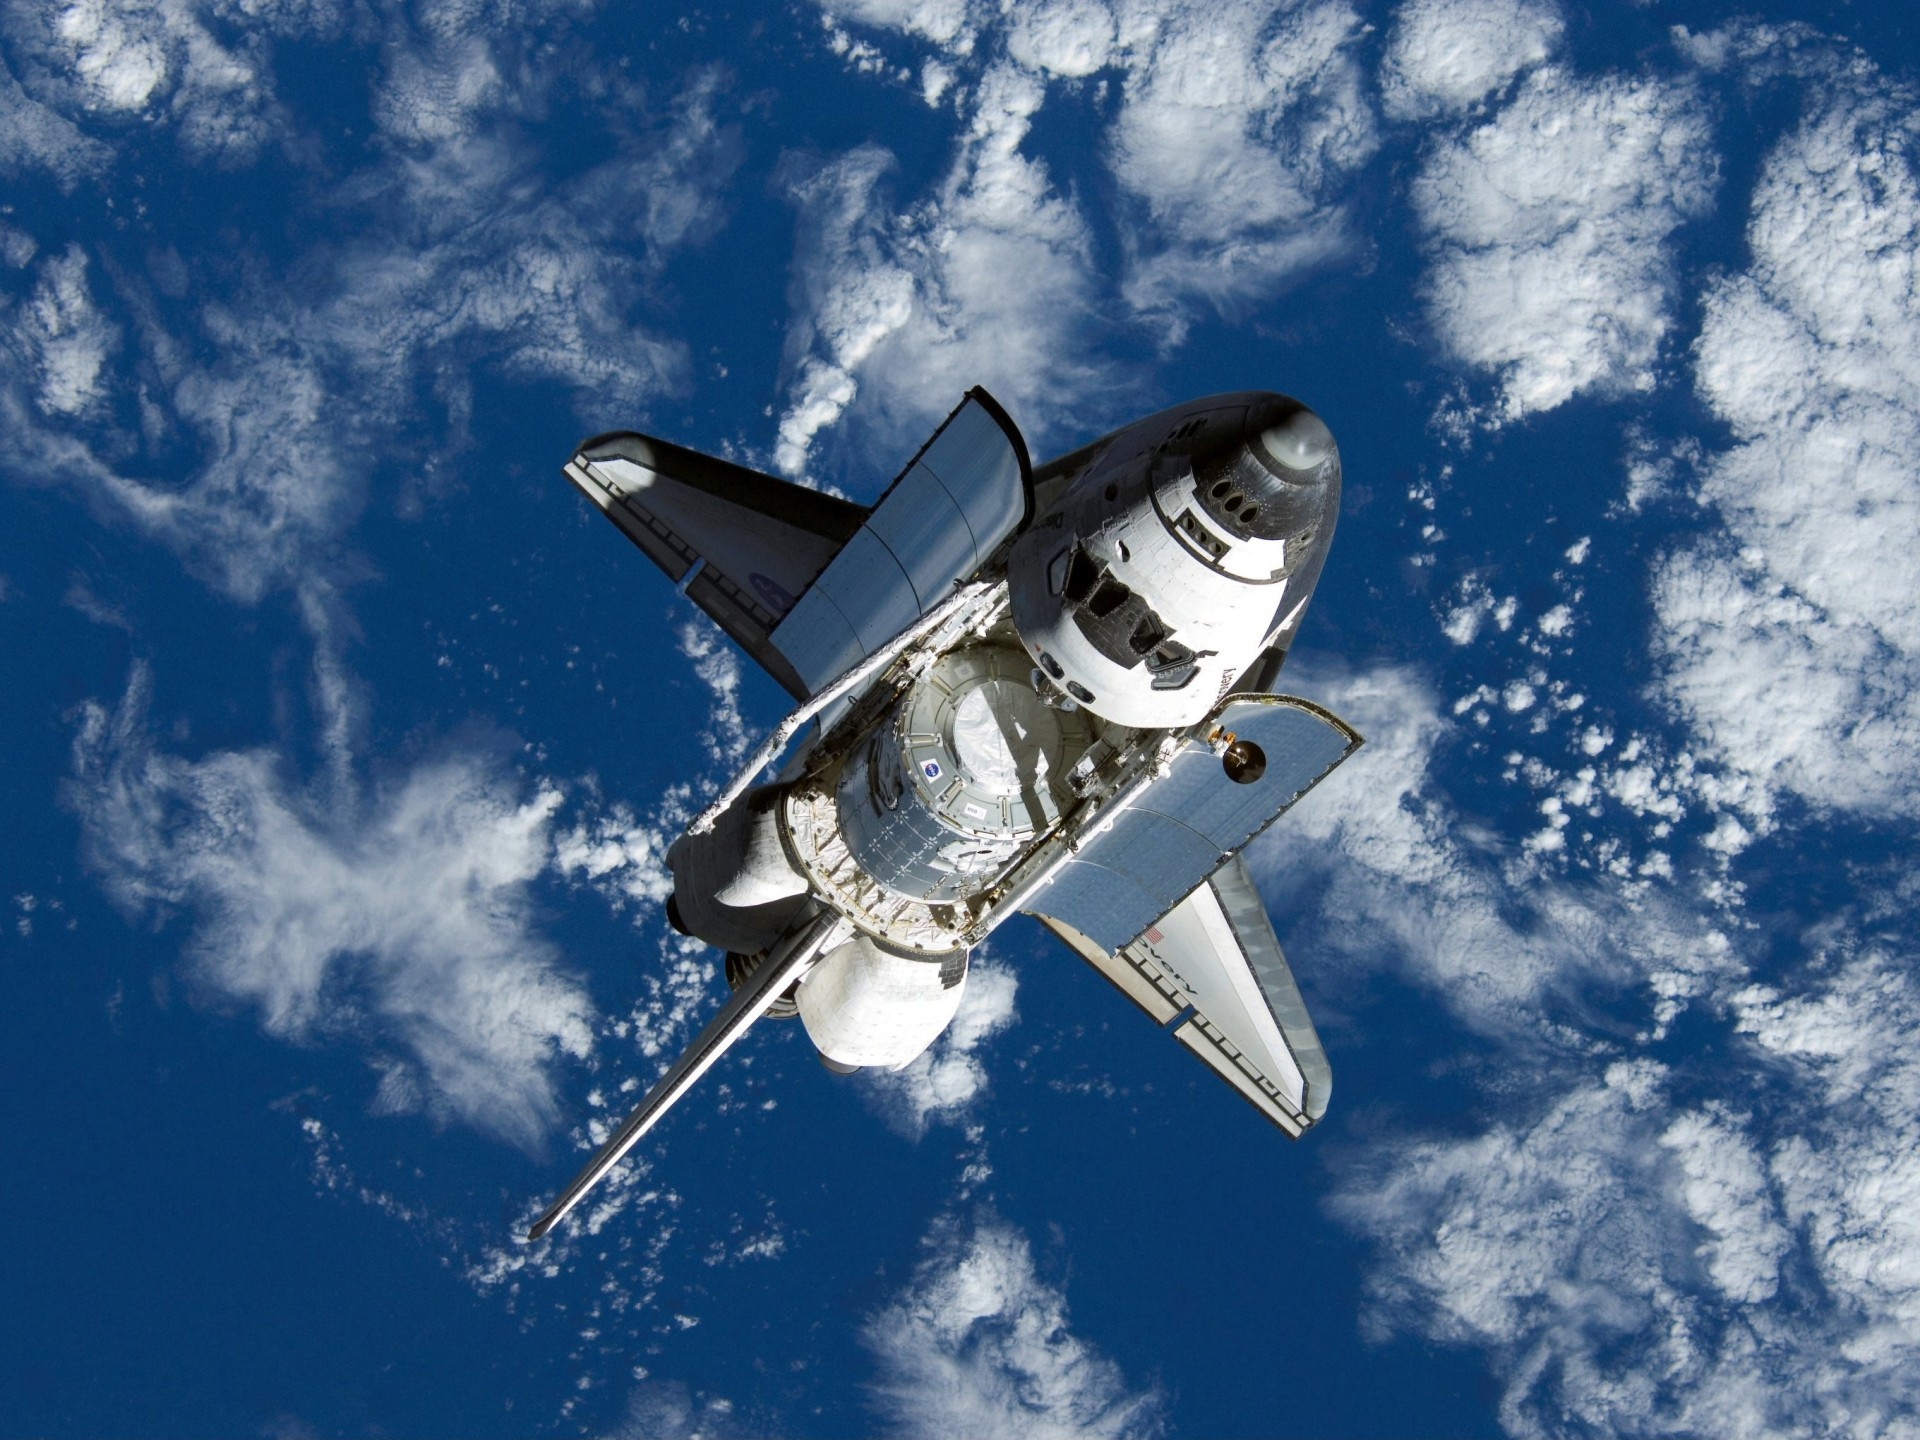 1920x1440 Space Shuttle HD Wallpaper - WallpaperSafari ...